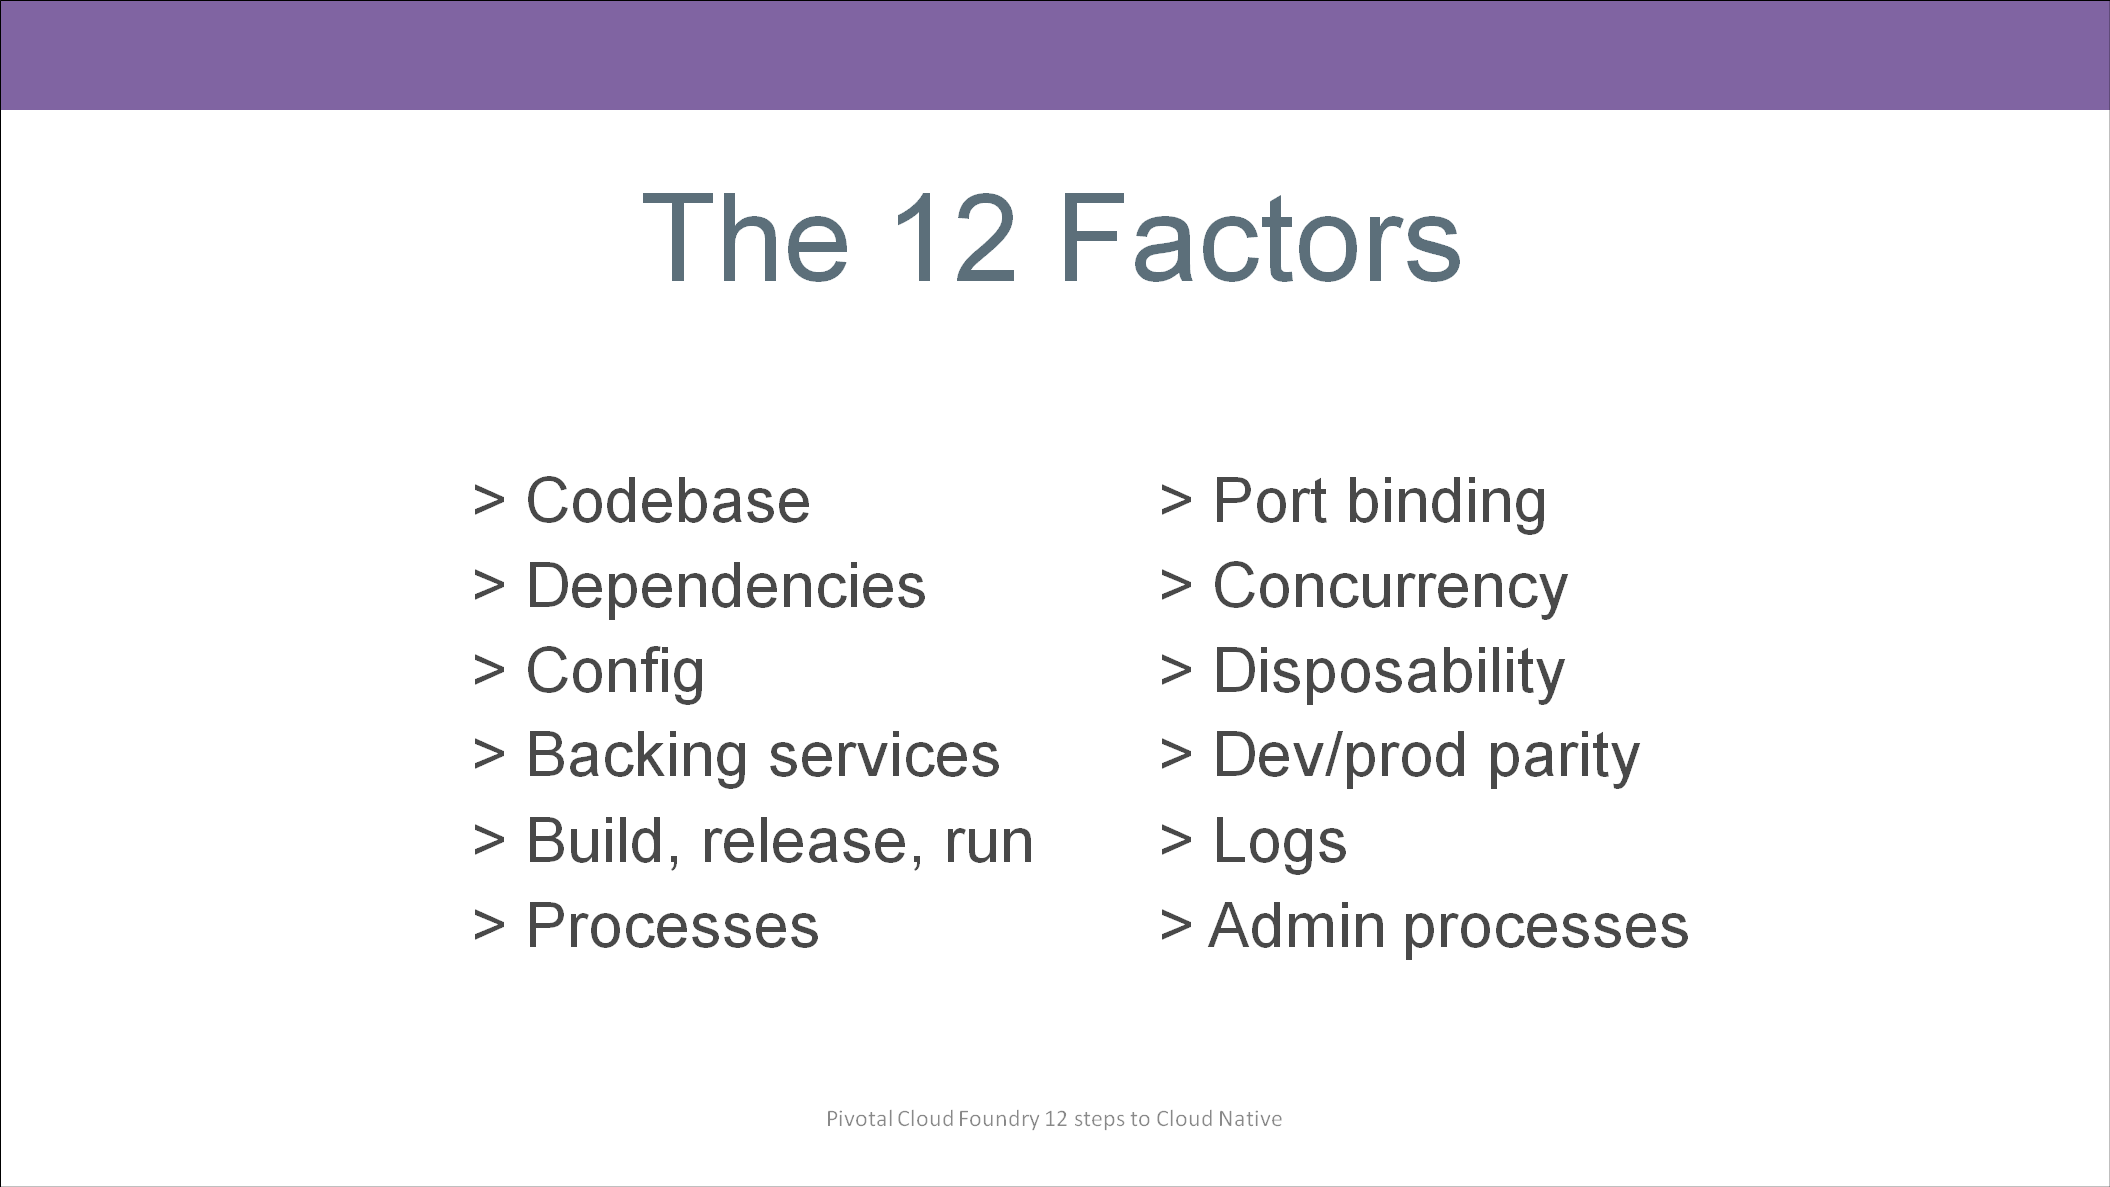 12 Factors to build Cloud Native Applications - The 12 Factors